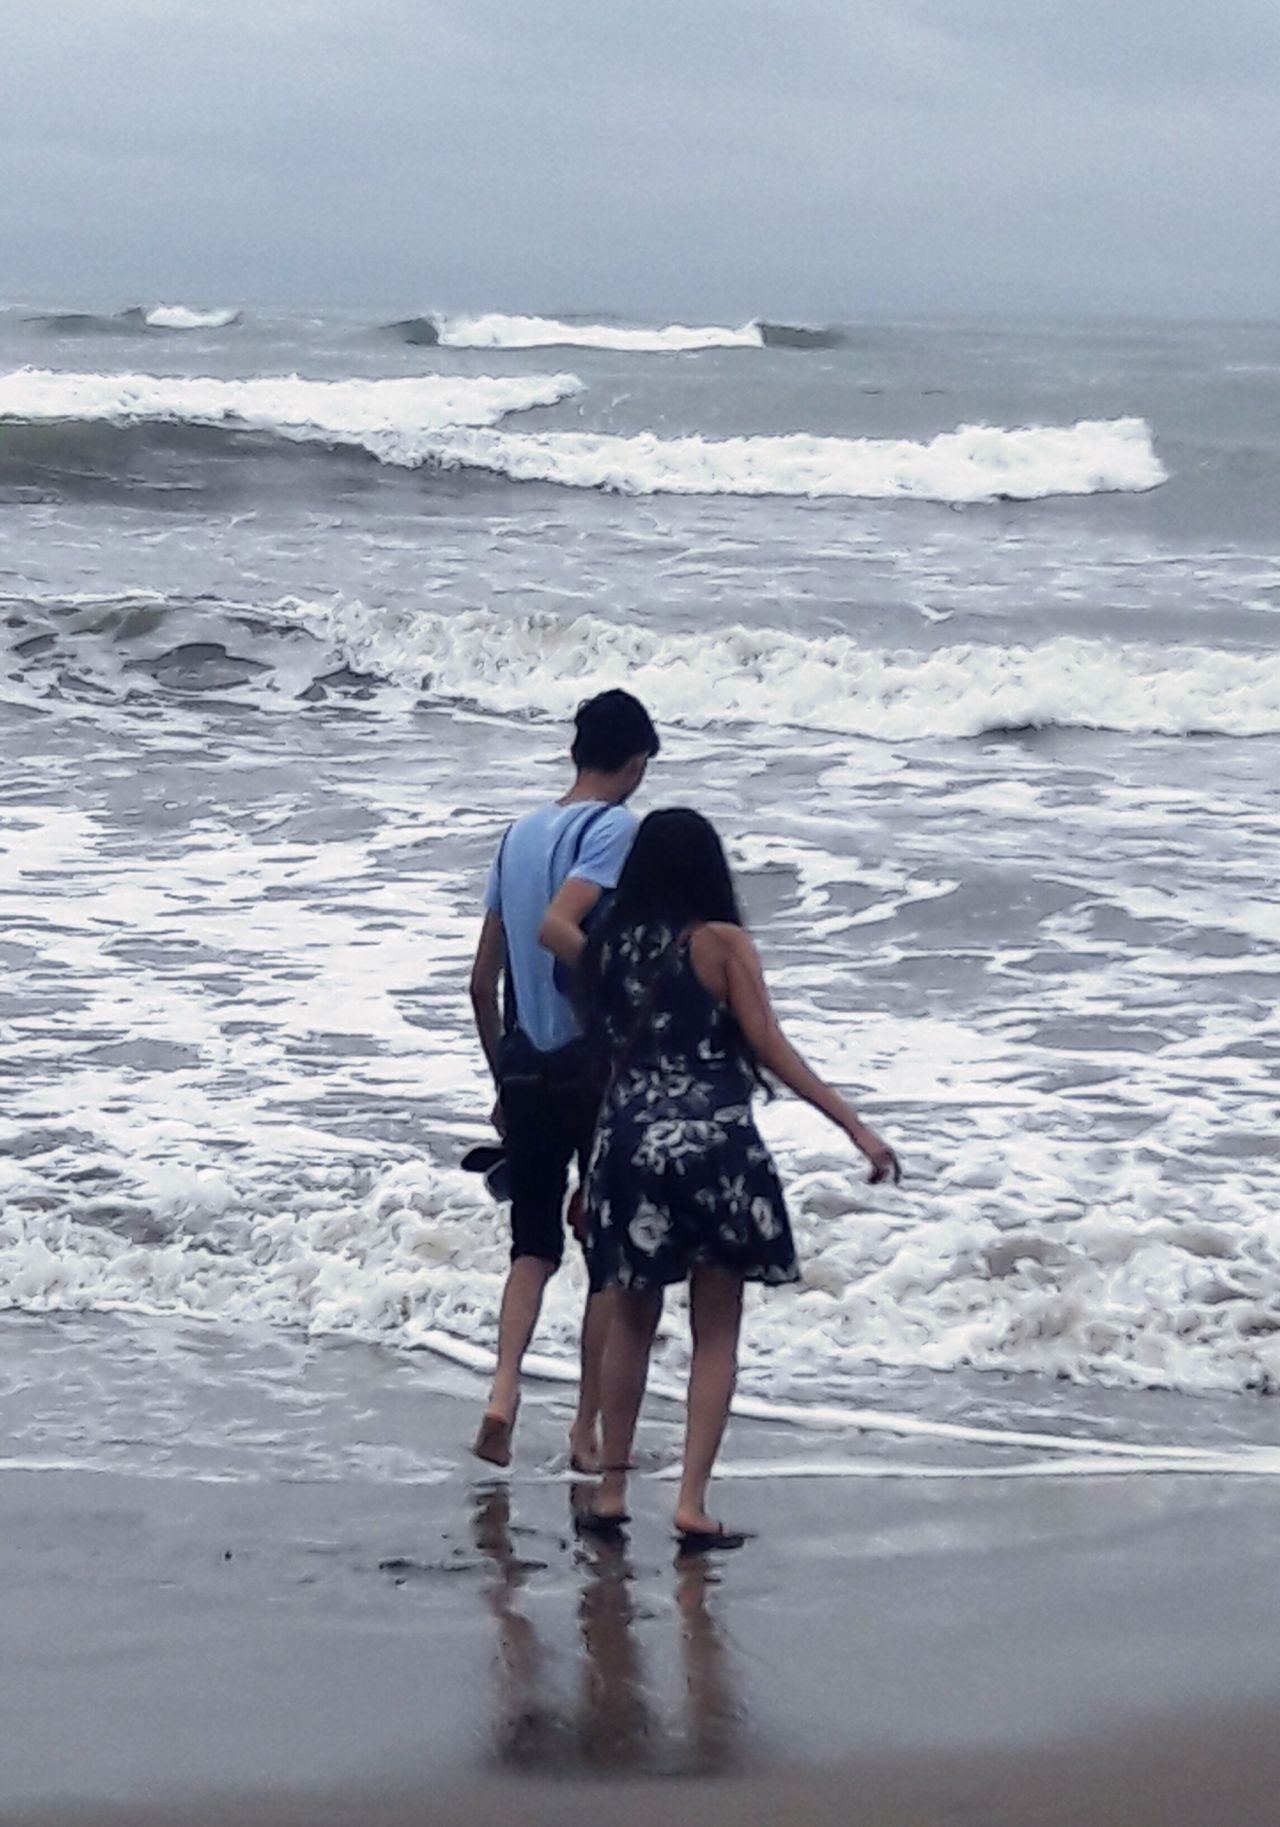 Sommergefühle Two People Togetherness Beach Sea Love Bonding Young Men Standing Ankle Deep In Water Sand Wave Water Horizon Couple Fun Sister Pull Full Length Woman Man Girl Boy Friends Brother EyeEmNewHere